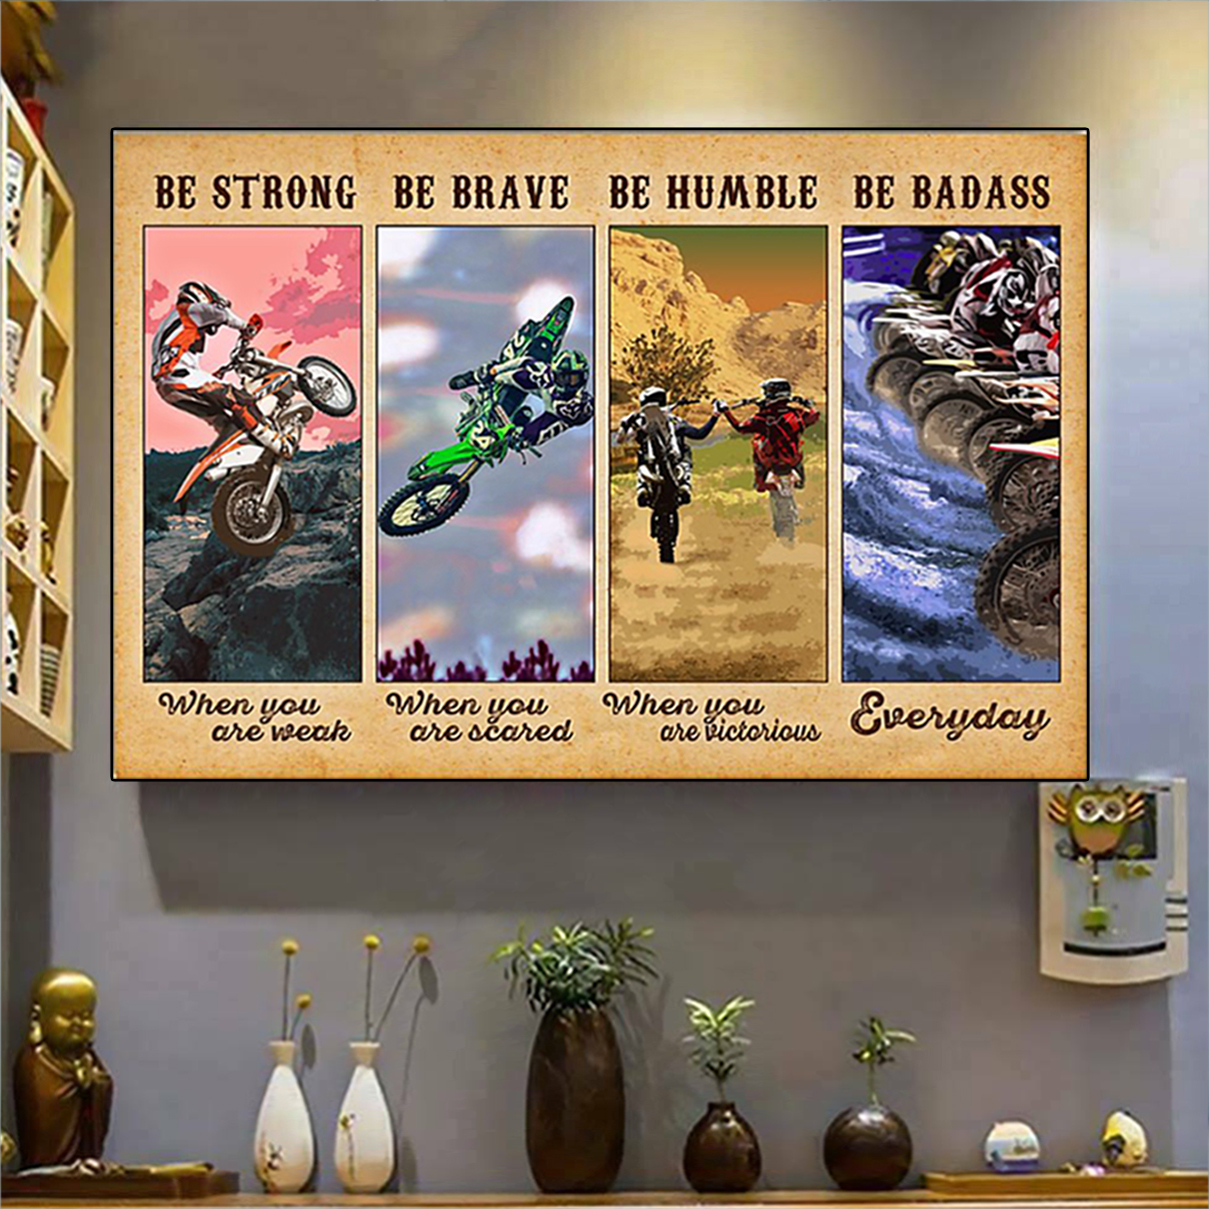 Motocross be strong be brave be humble be badass poster A2